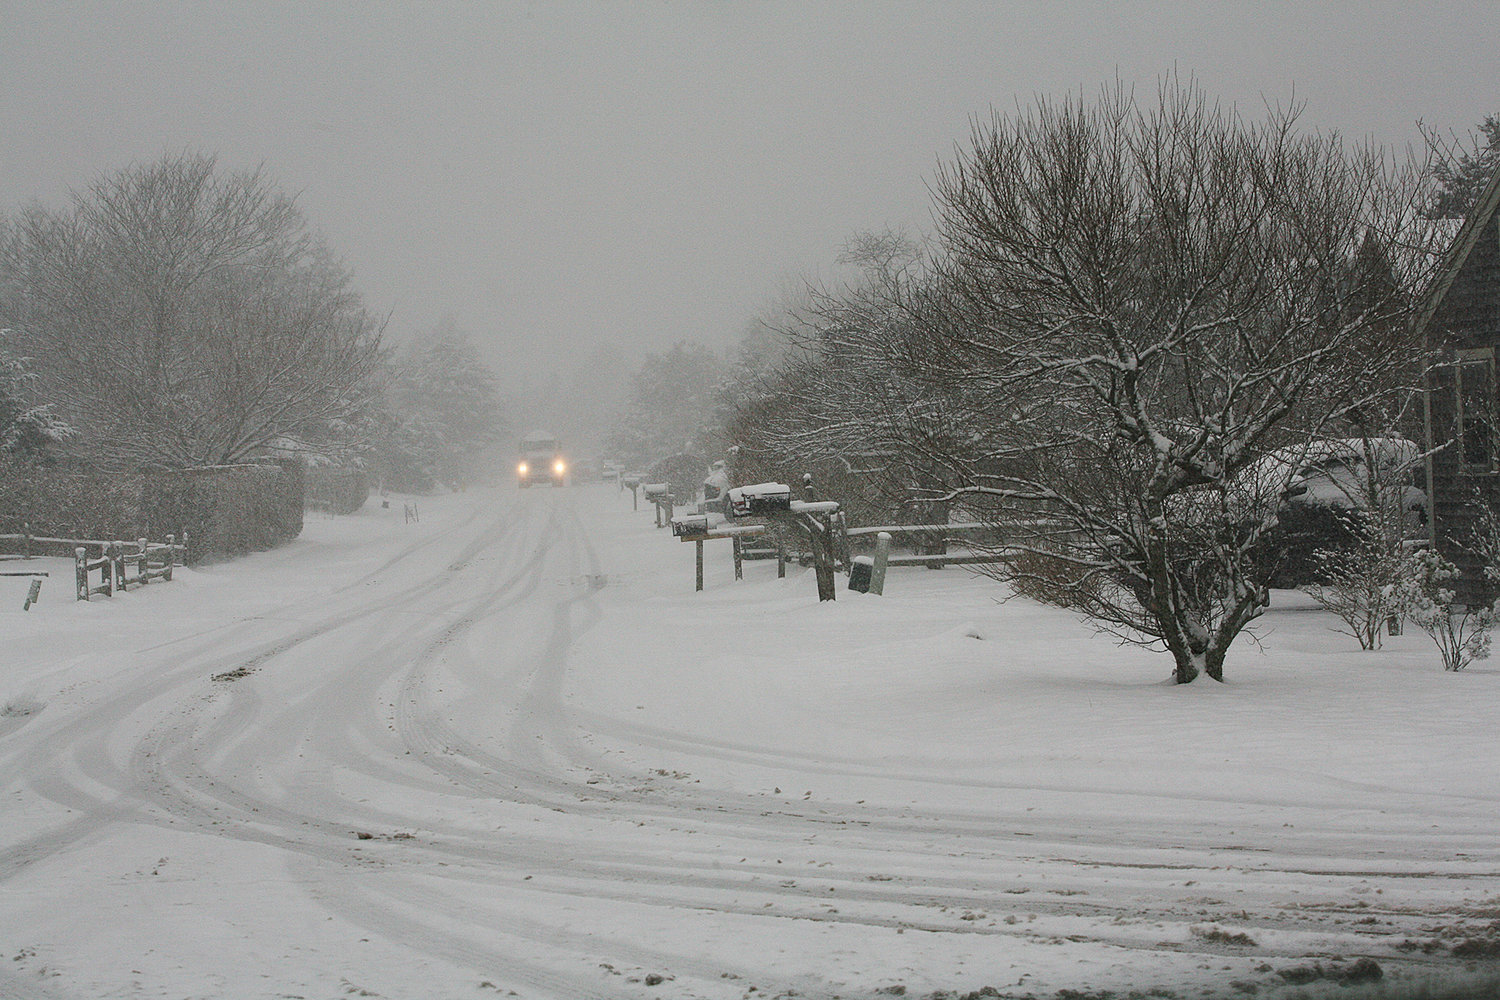 Snow blankets a road off Surfside Road near the schools.